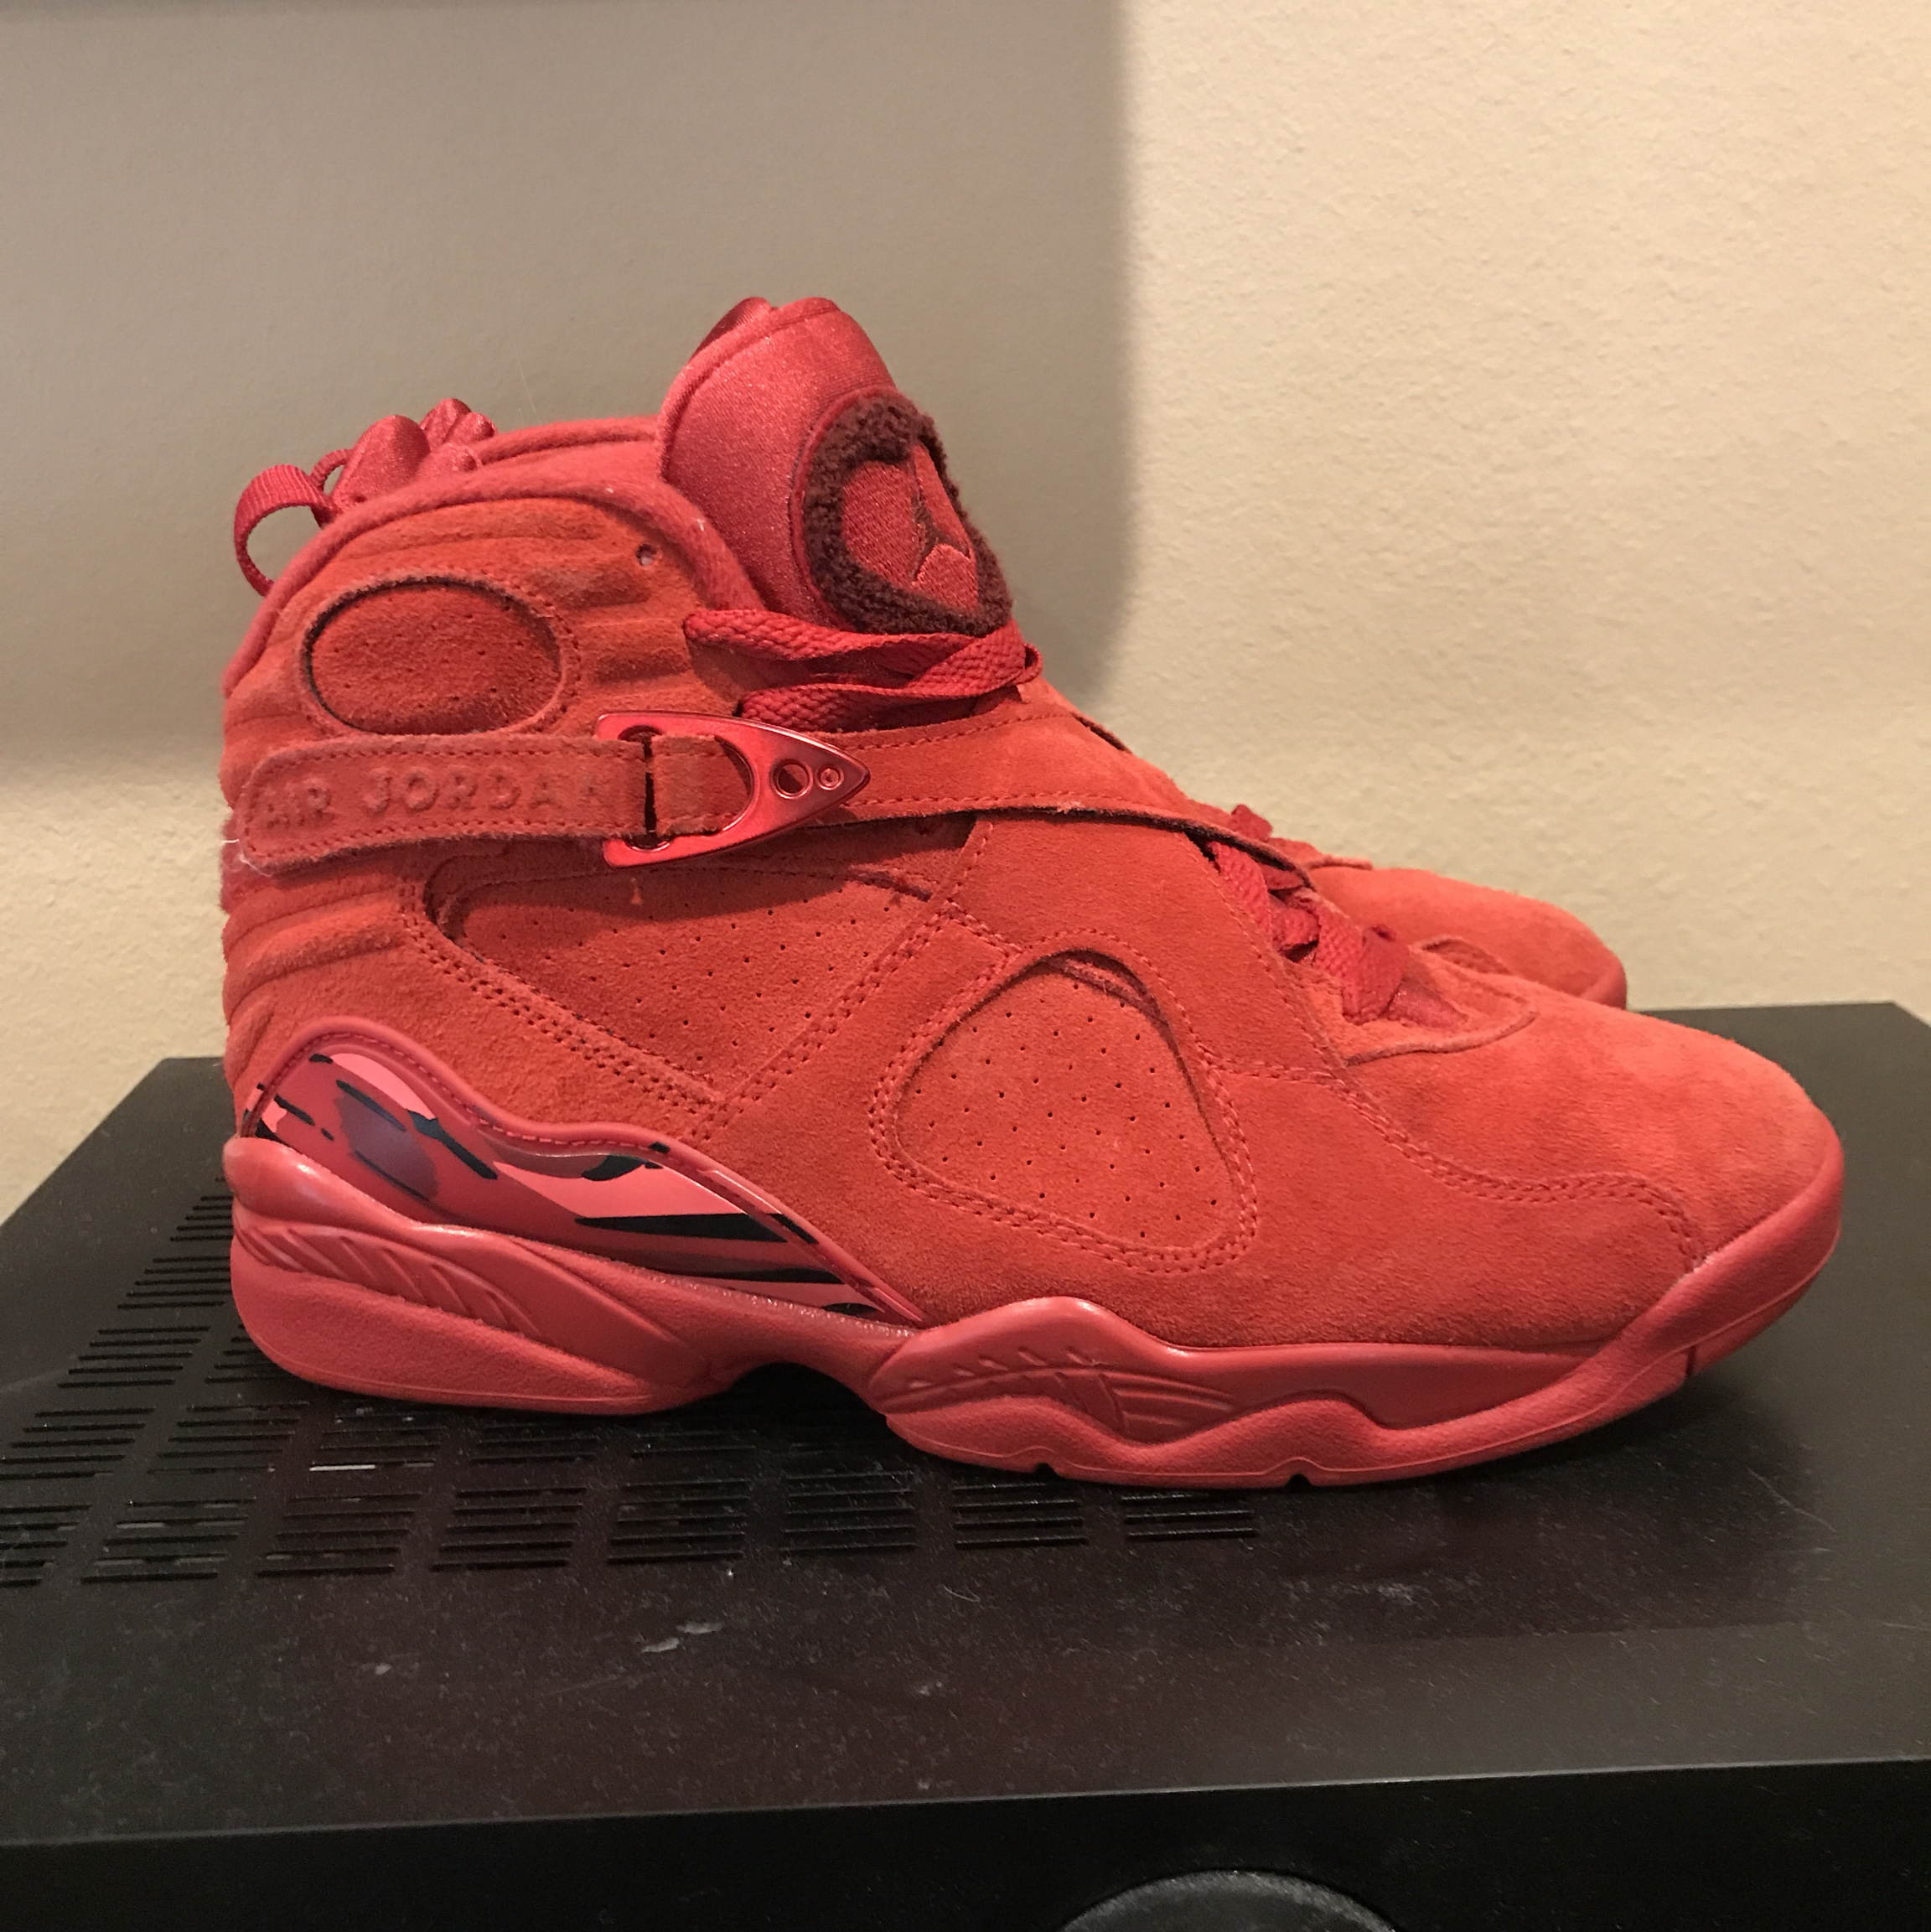 wholesale dealer 39958 11985 2018 Valentines Day Womens size 8 red Air Jordan 8... - Depop